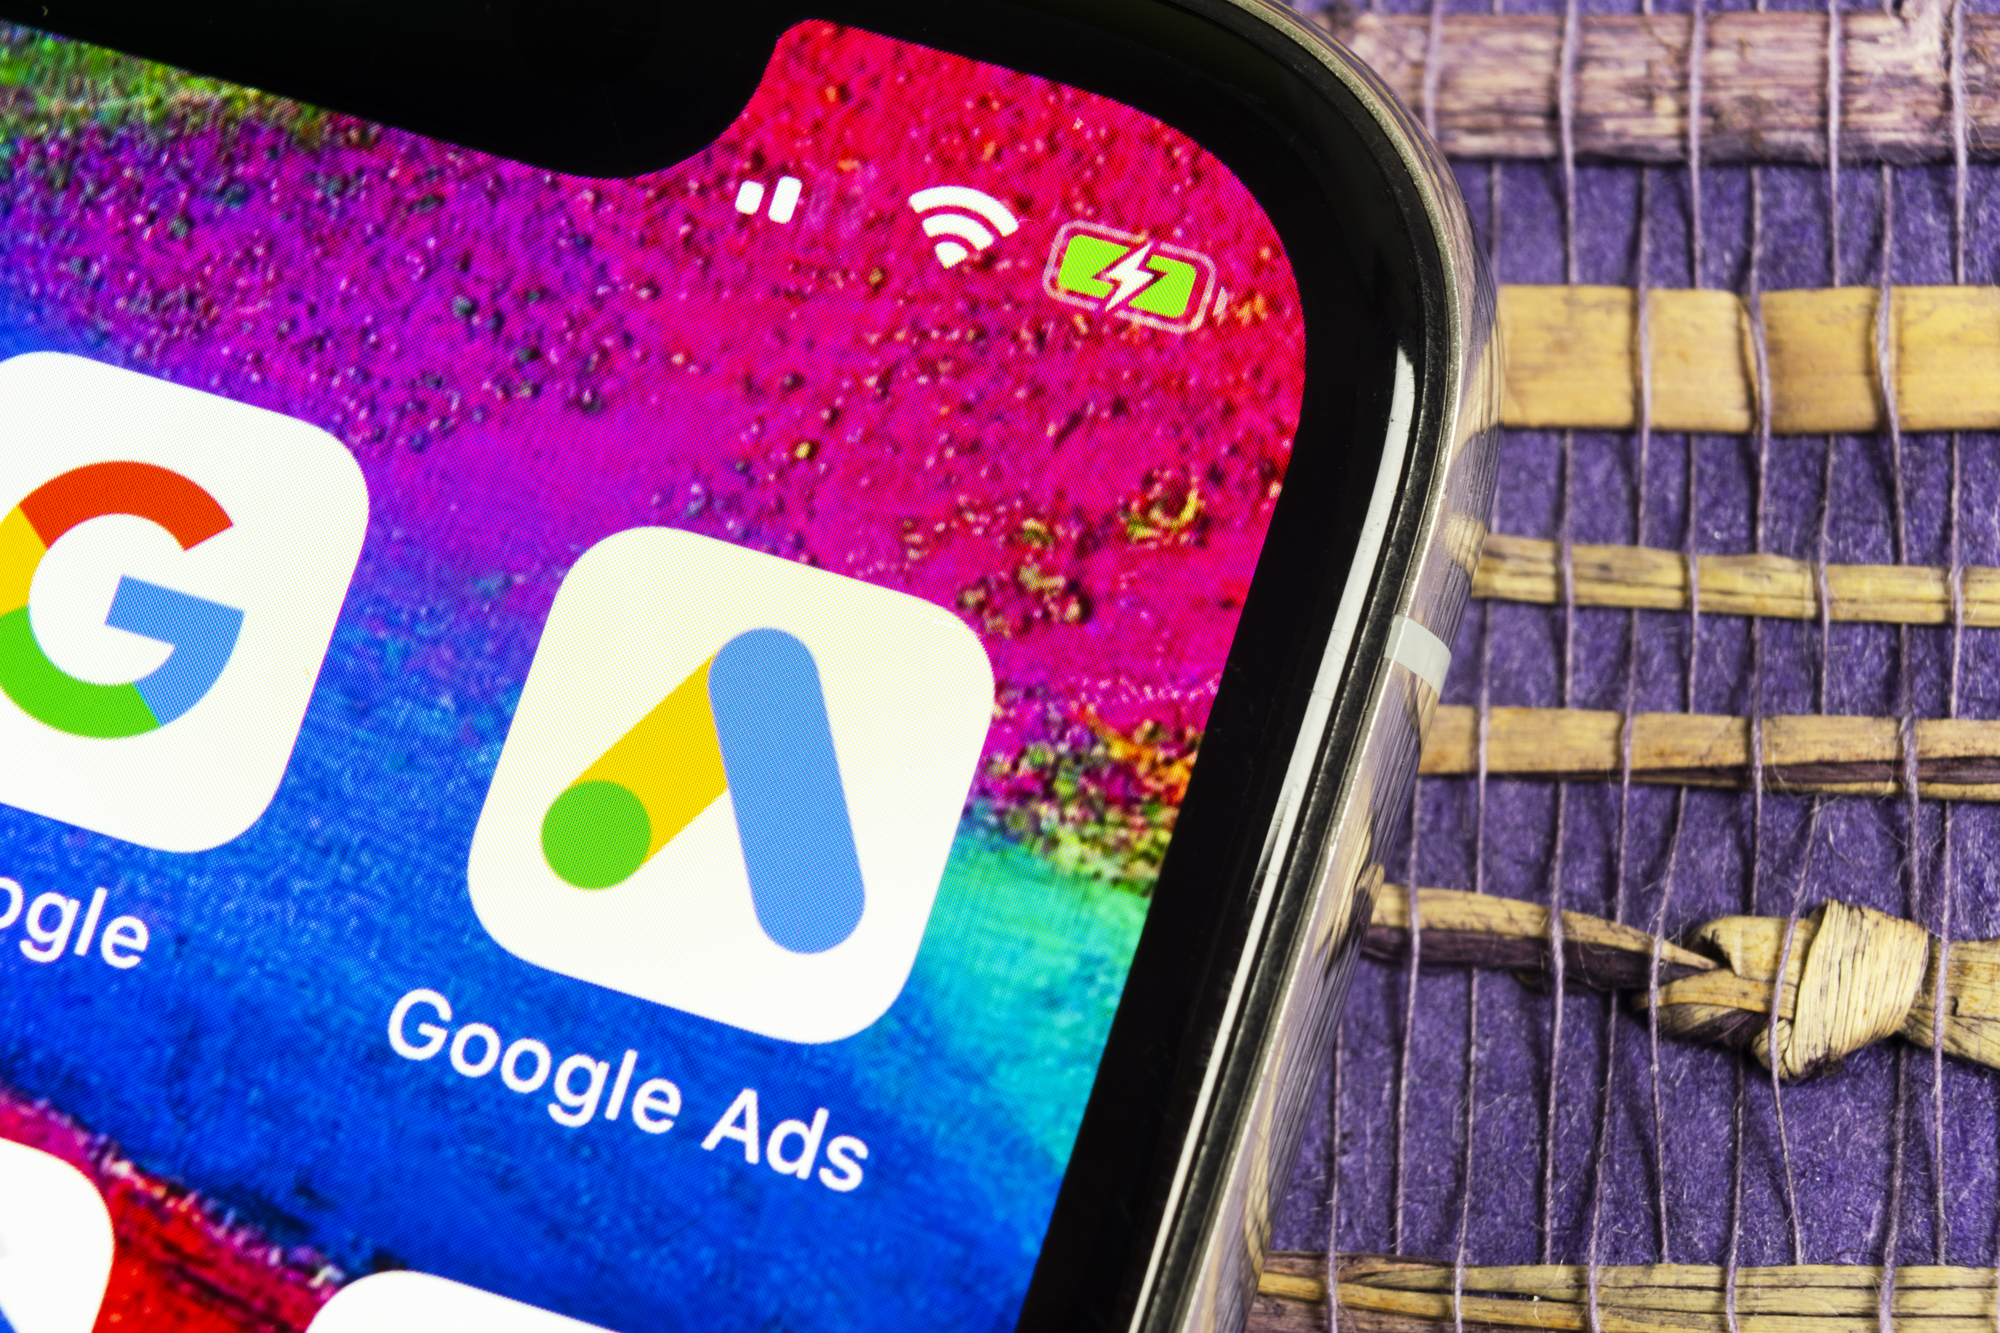 Google Ads AdWords application icon on Apple iPhone X screen close-up